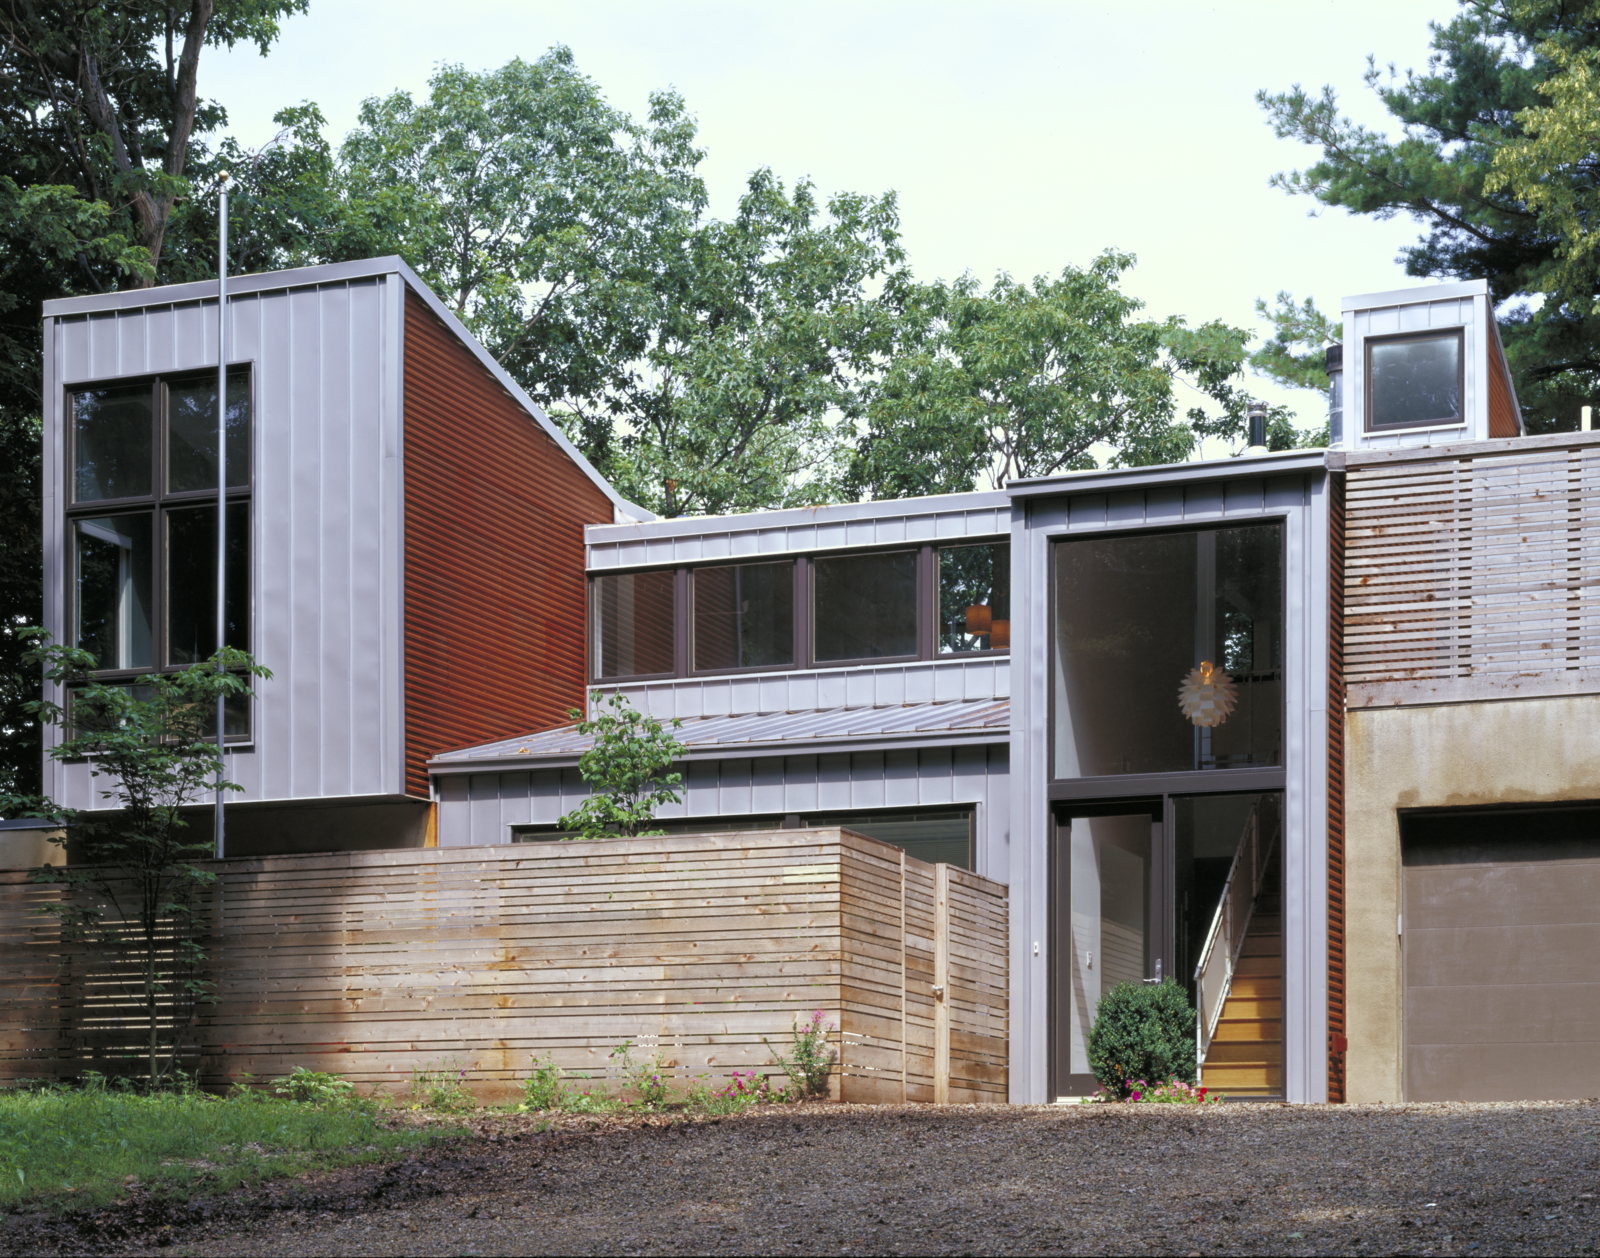 Exterior and House Building Type  Harbert Dune Home by Kuklinski + Rappe Architects